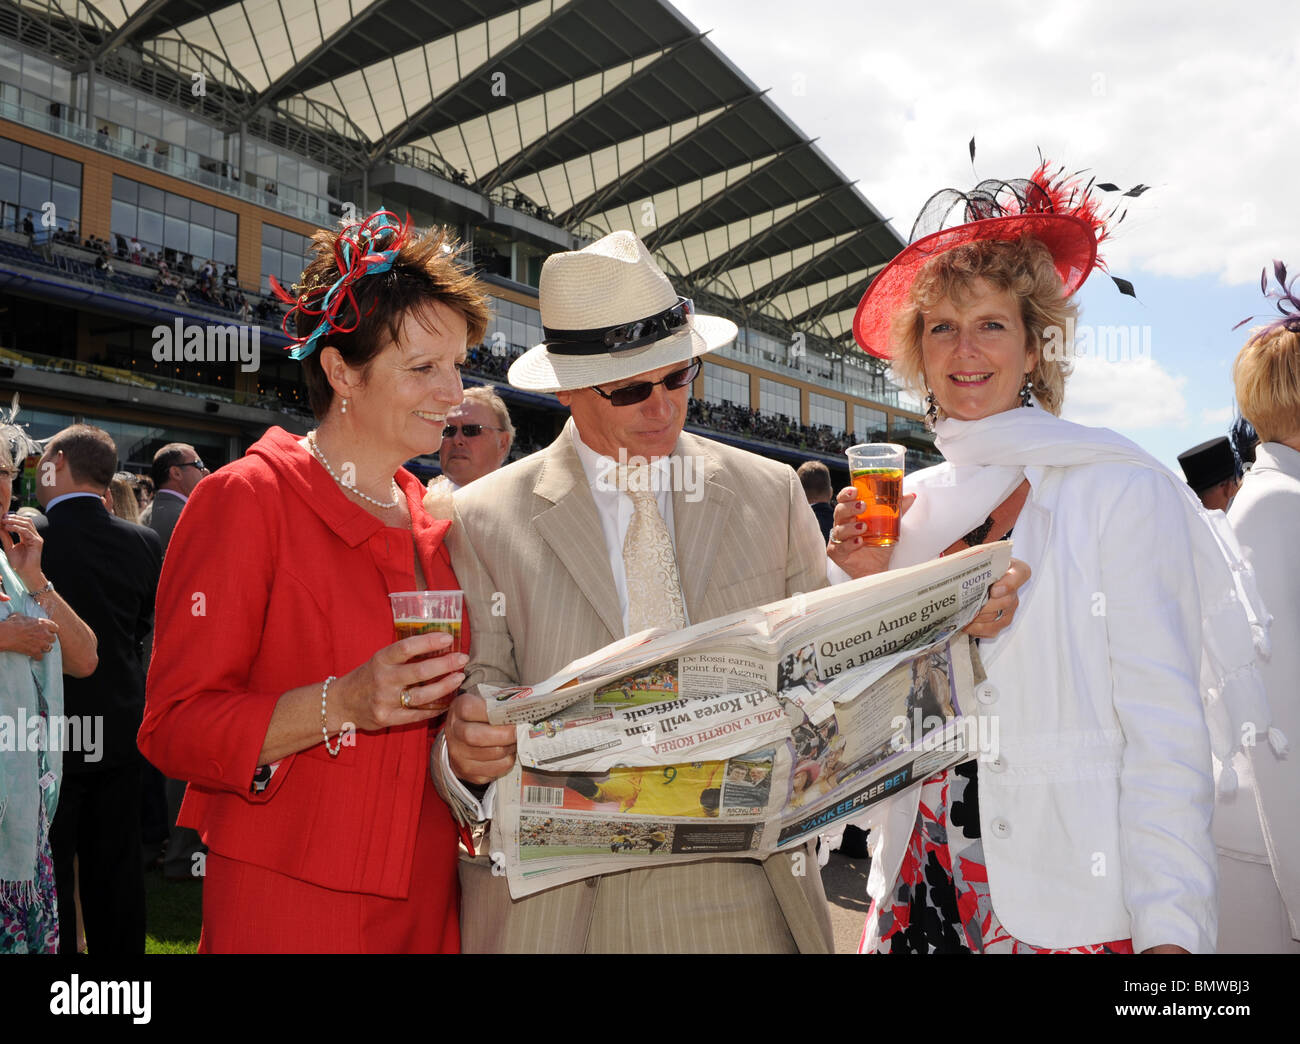 Royal Ascot  Horse racing male and female Racegoers look at the Racing Post to decide which horses to back - Stock Image